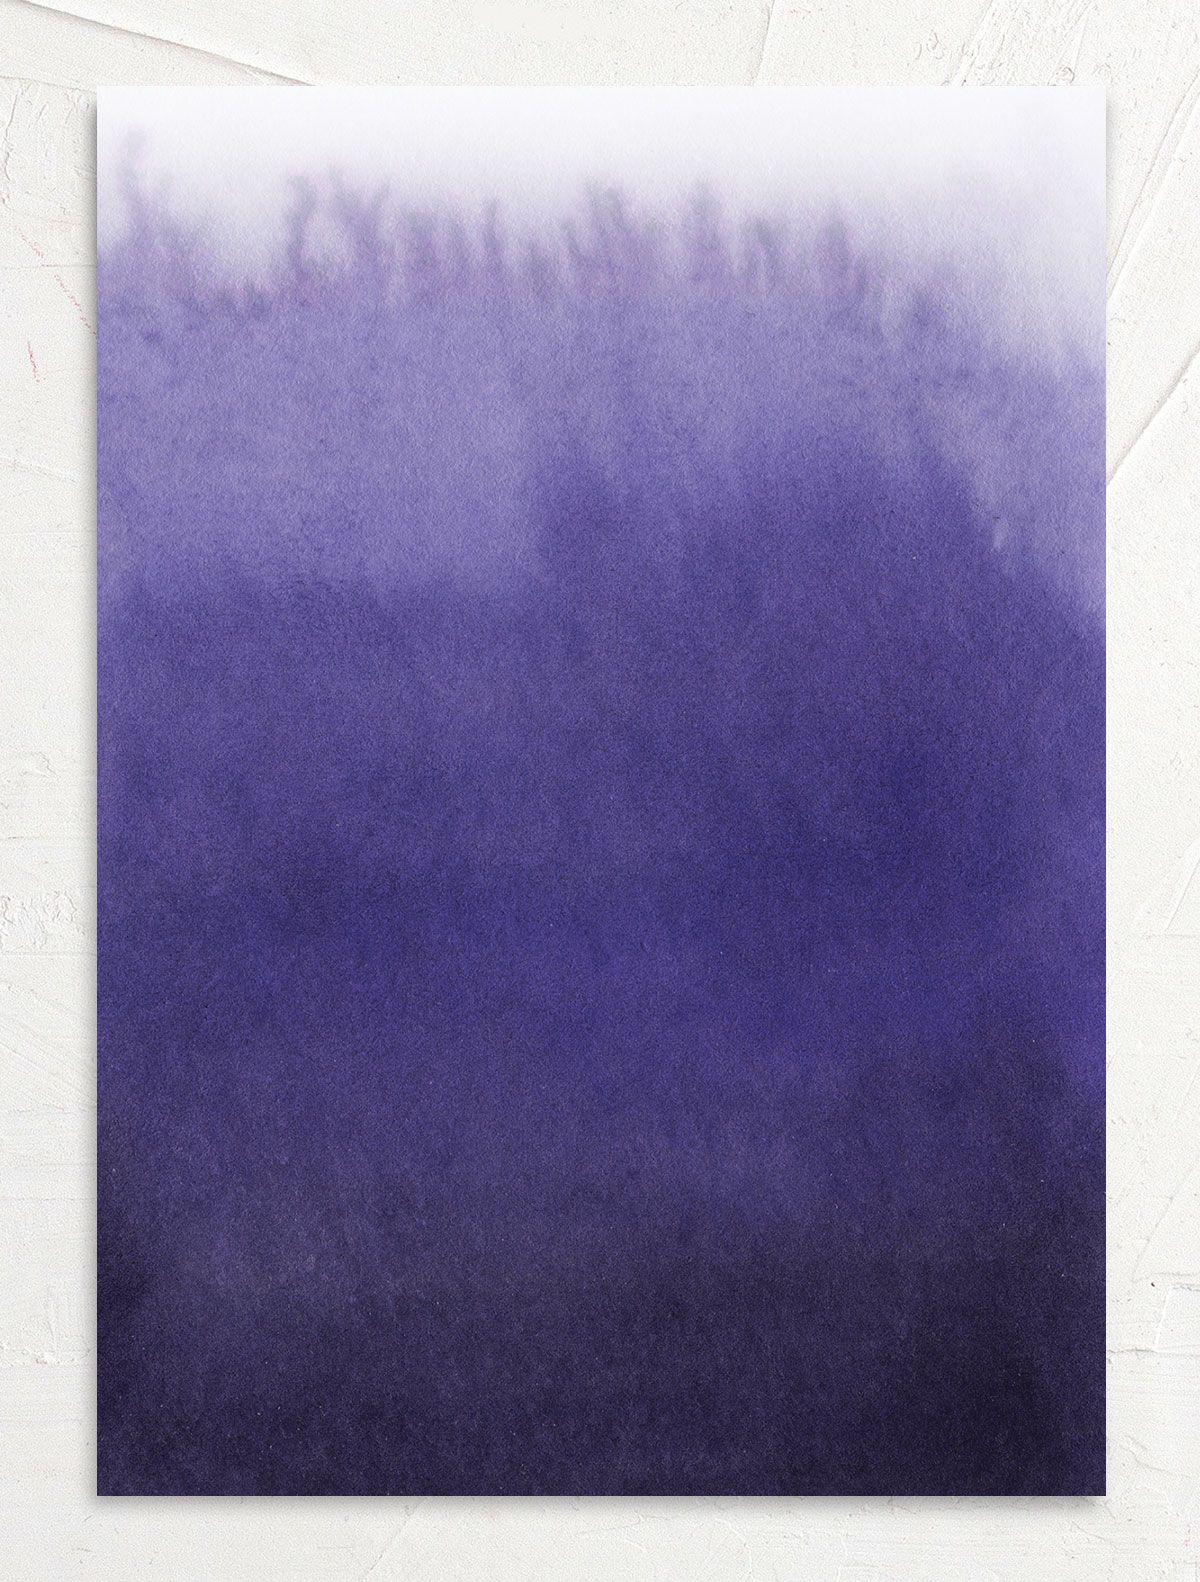 Painted Ethereal Wedding Invitation back purple